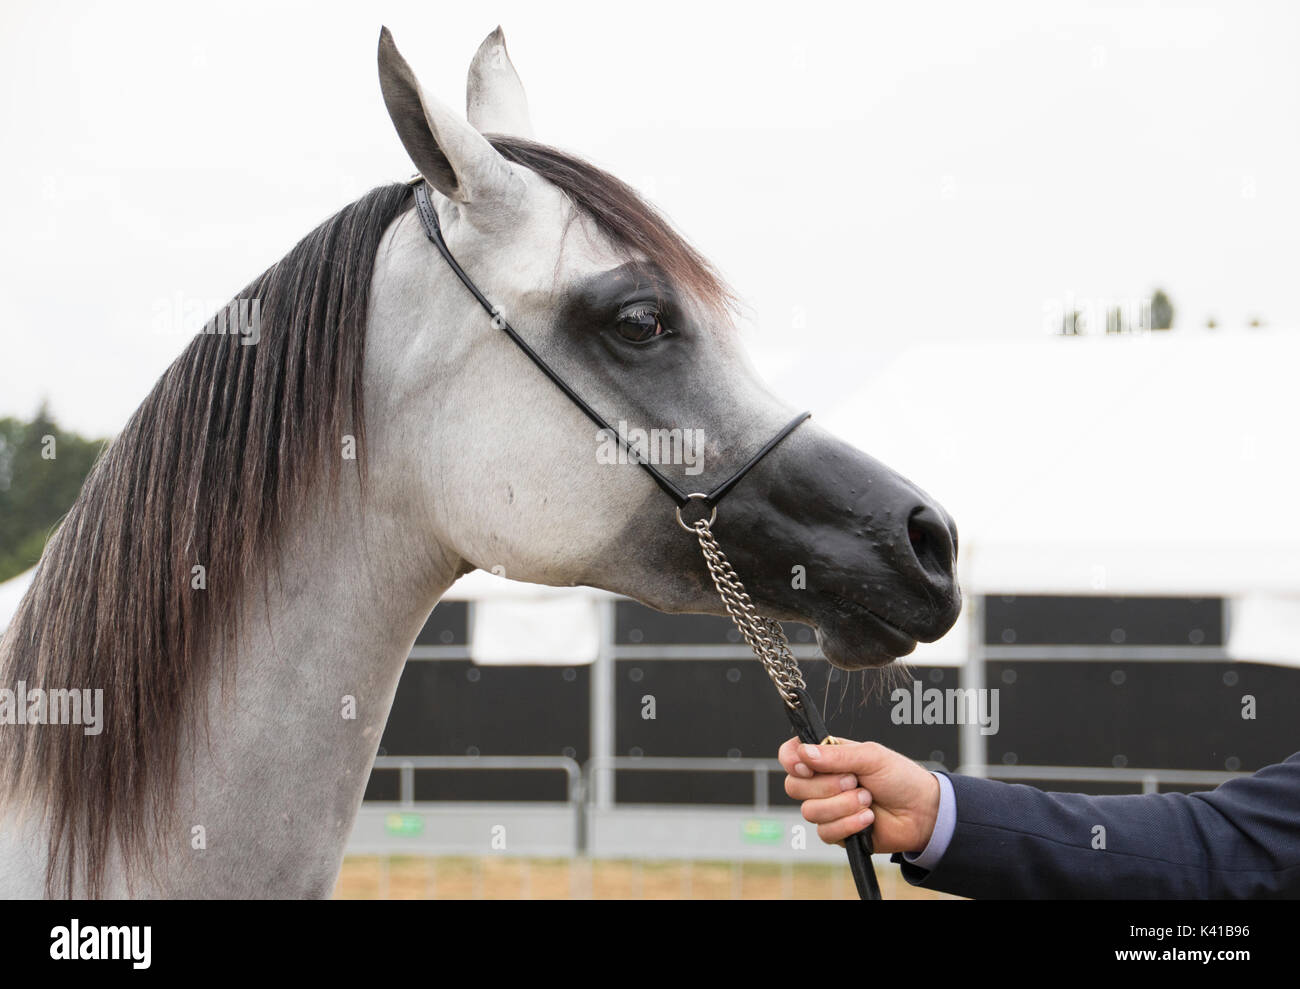 Headshot Of White Arabian Yearling Filley With Black Mane At The Stock Photo Alamy